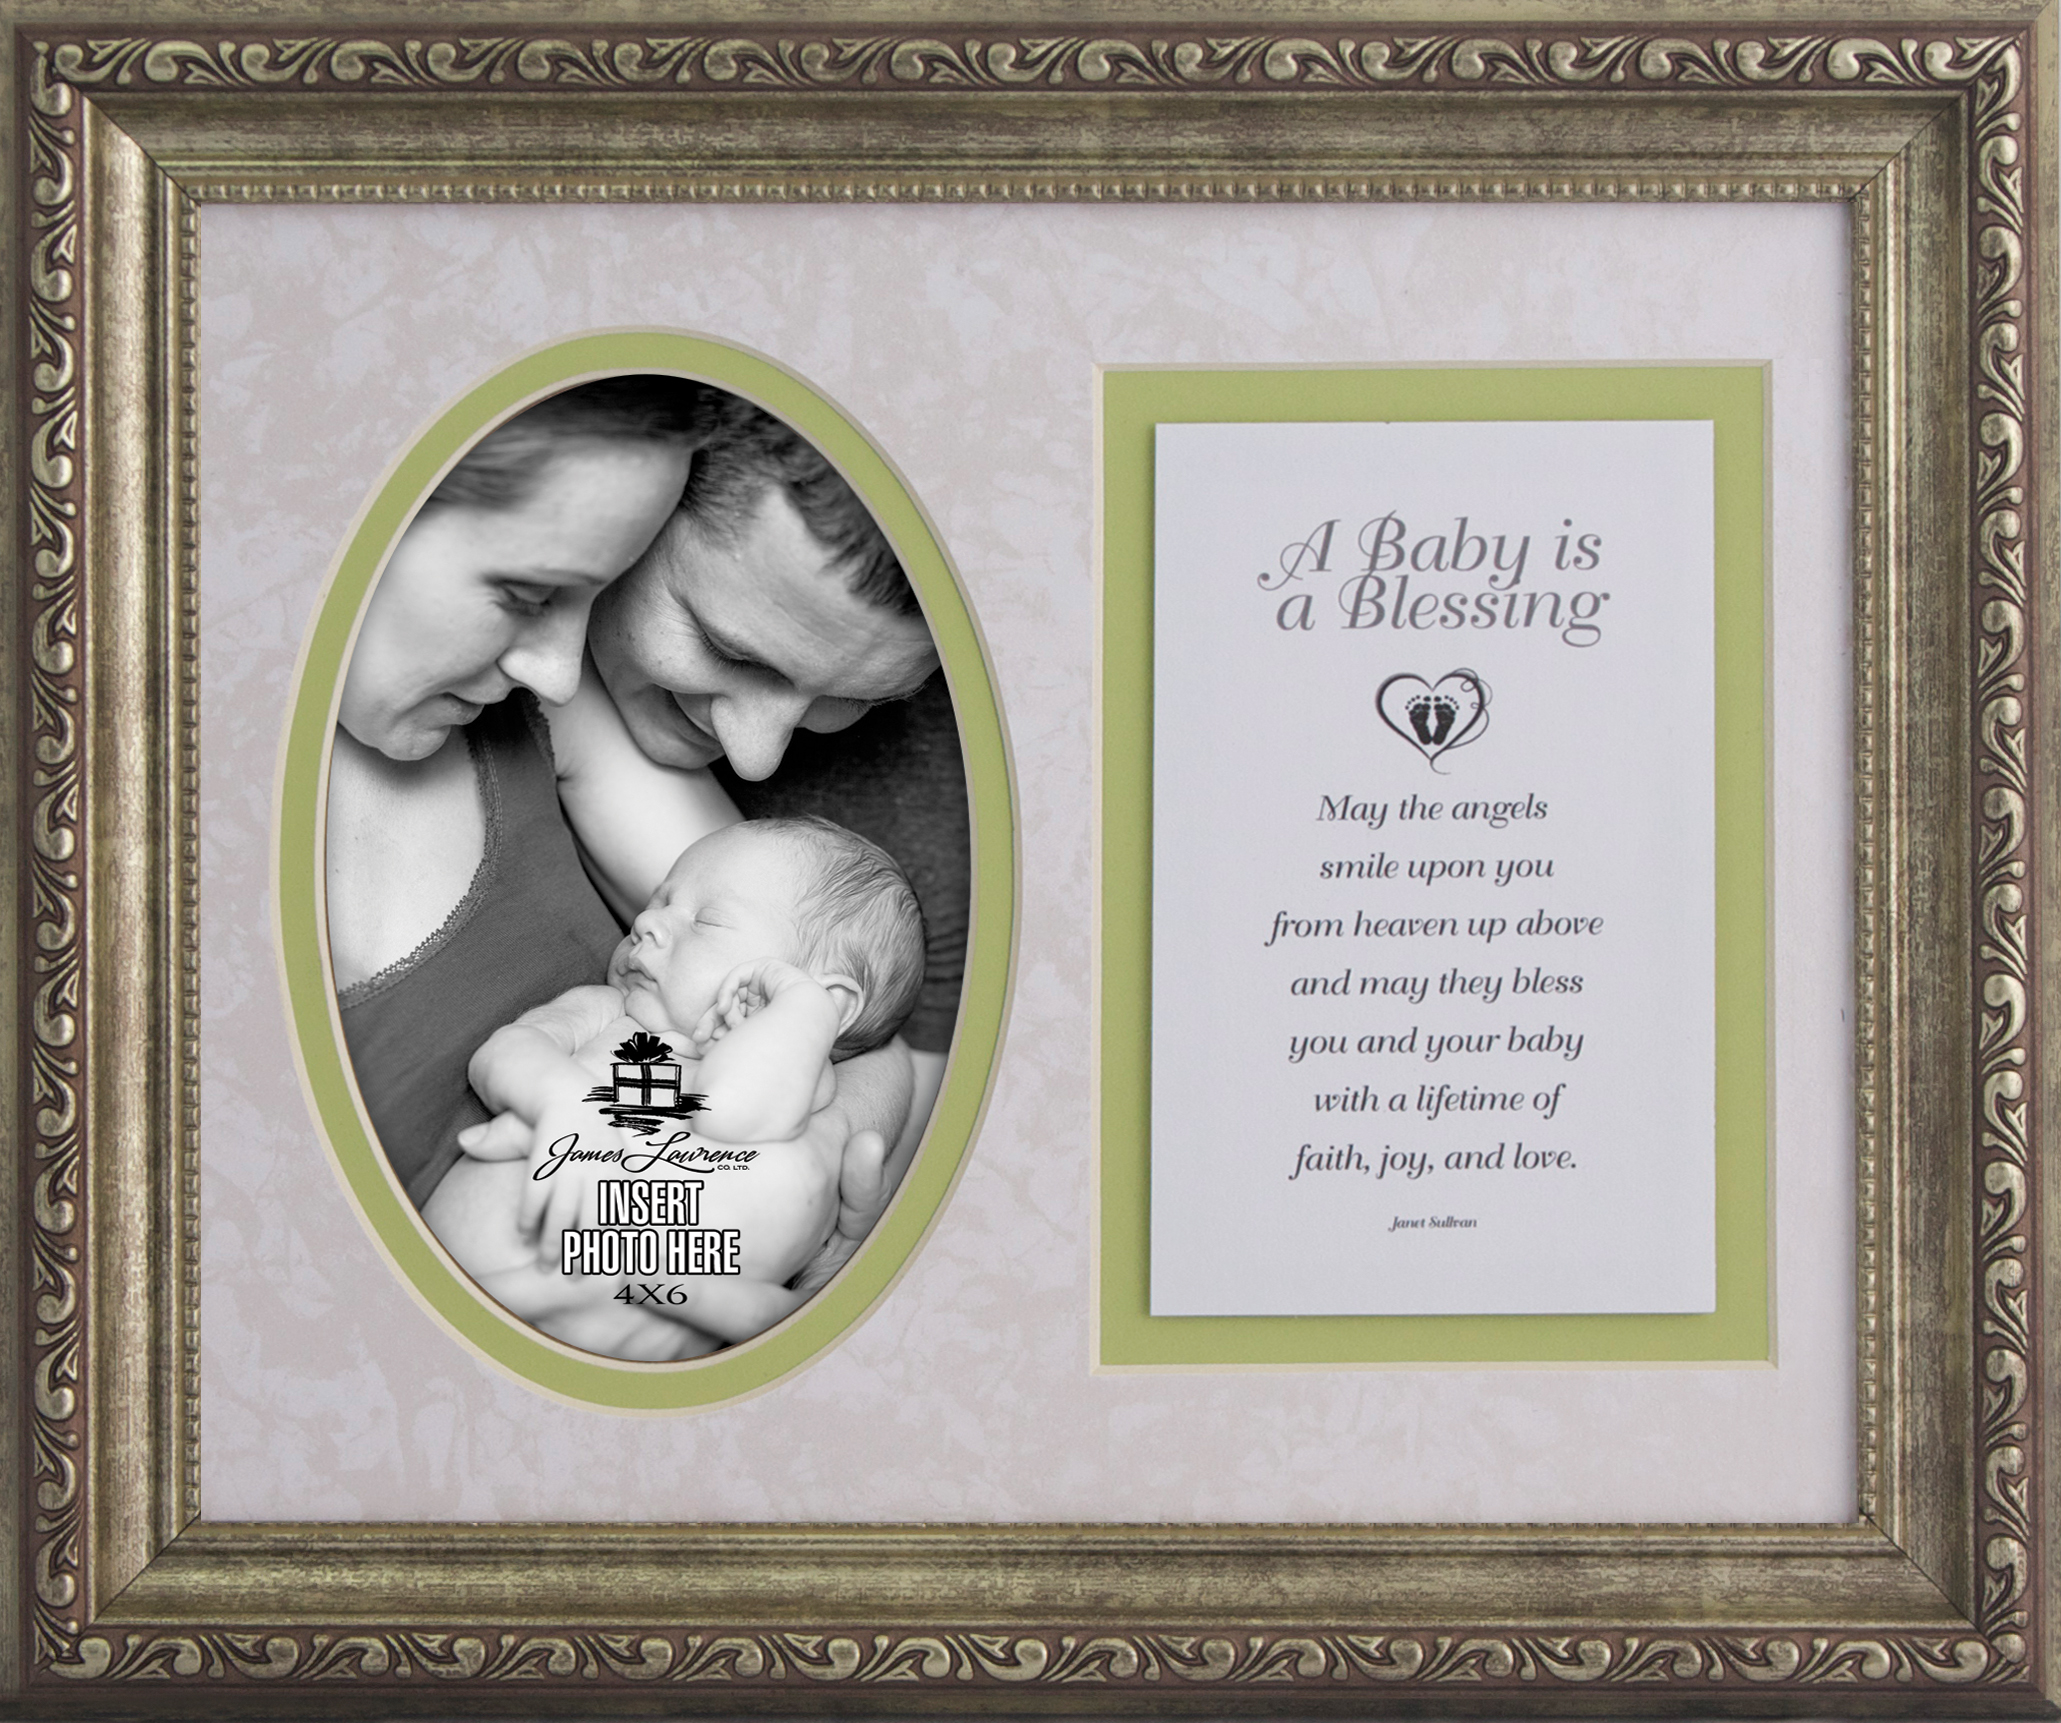 A Baby is a Blesssing Photo Frame and Verse framed picture, inspirational message, home decor, wall decor, framed art, words of grace, 7041